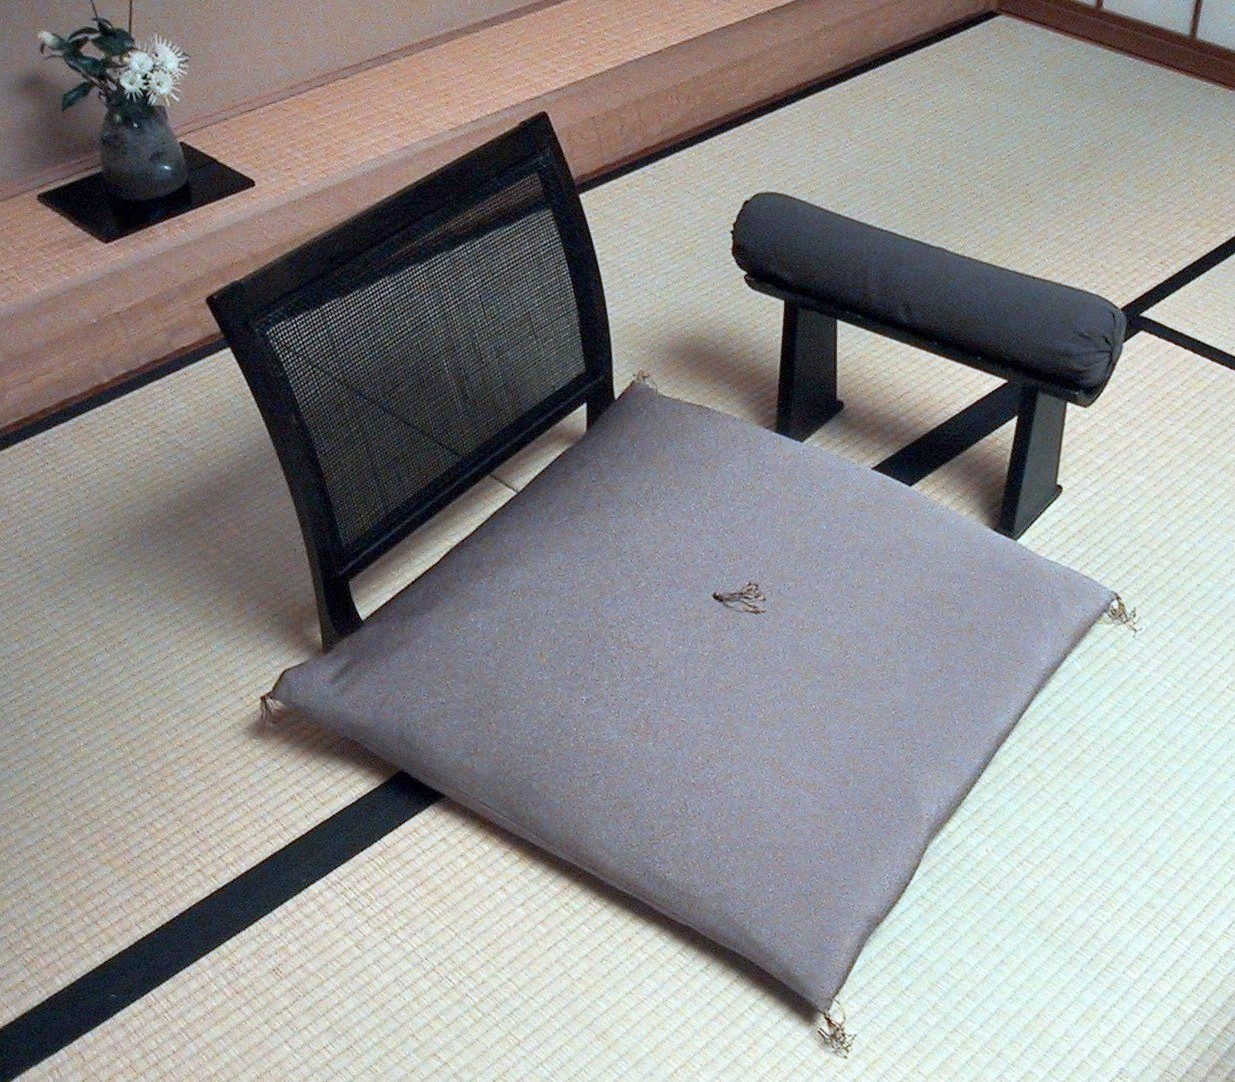 File Japanese Chair And Armrest Jpg Wikimedia Commons